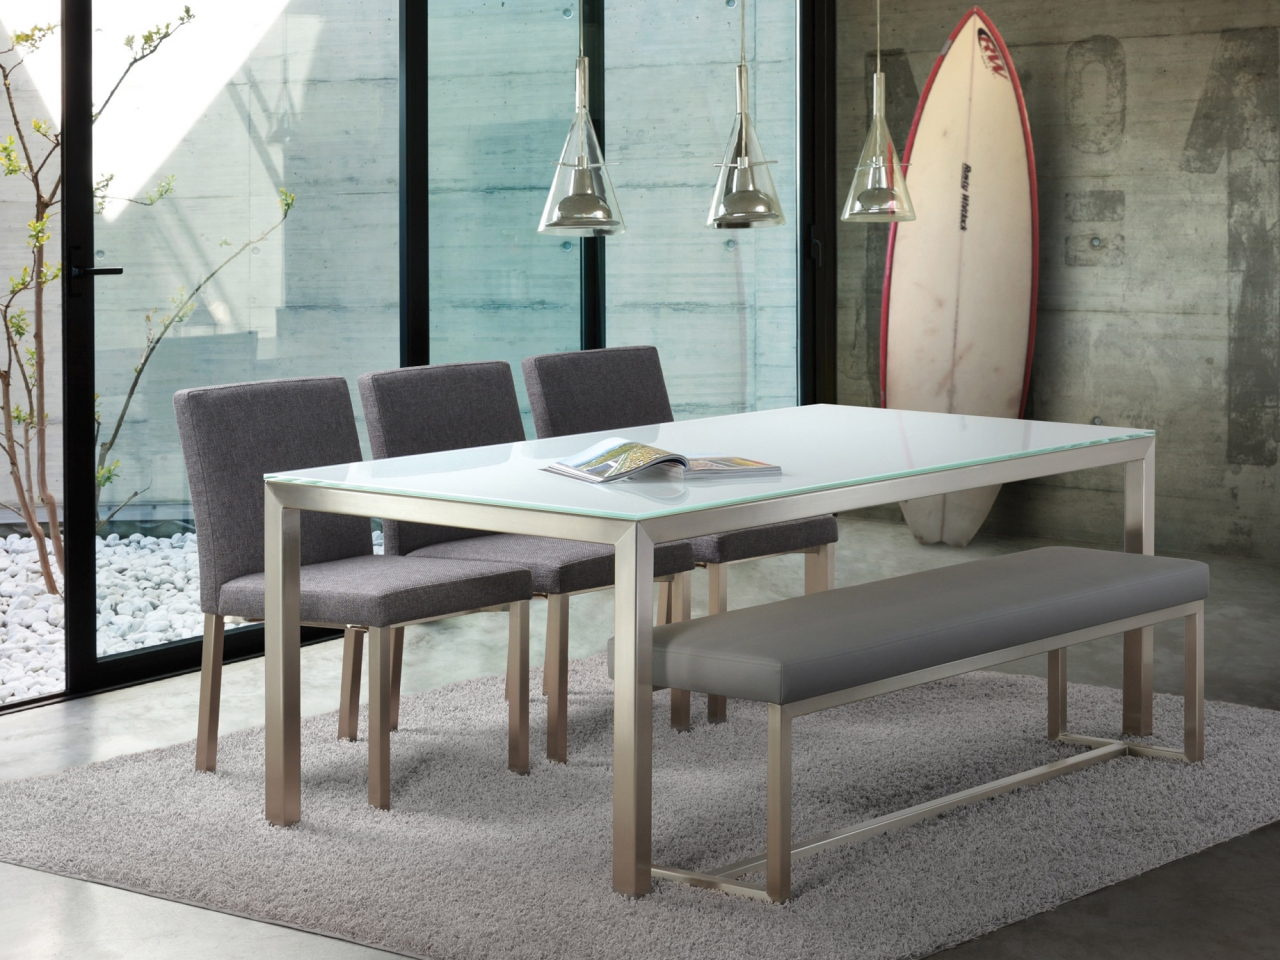 cubo_table-1280x960-2